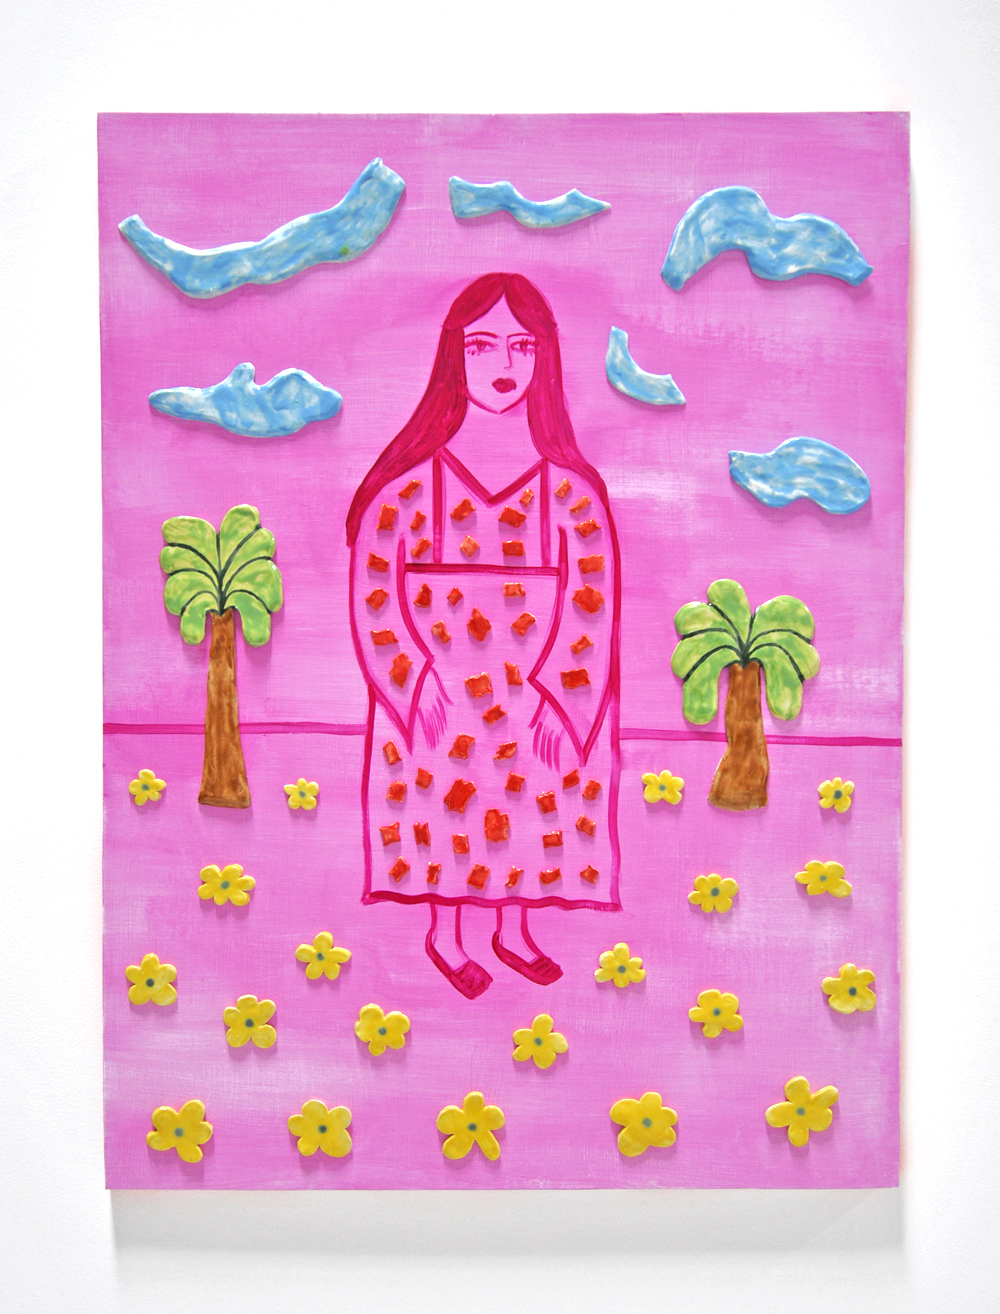 Maryam Yousif, PUABI AND TWO PALMS (MAGENTA), 36 x 48 in, Acrylic and glazed porcelain on panel, 2019